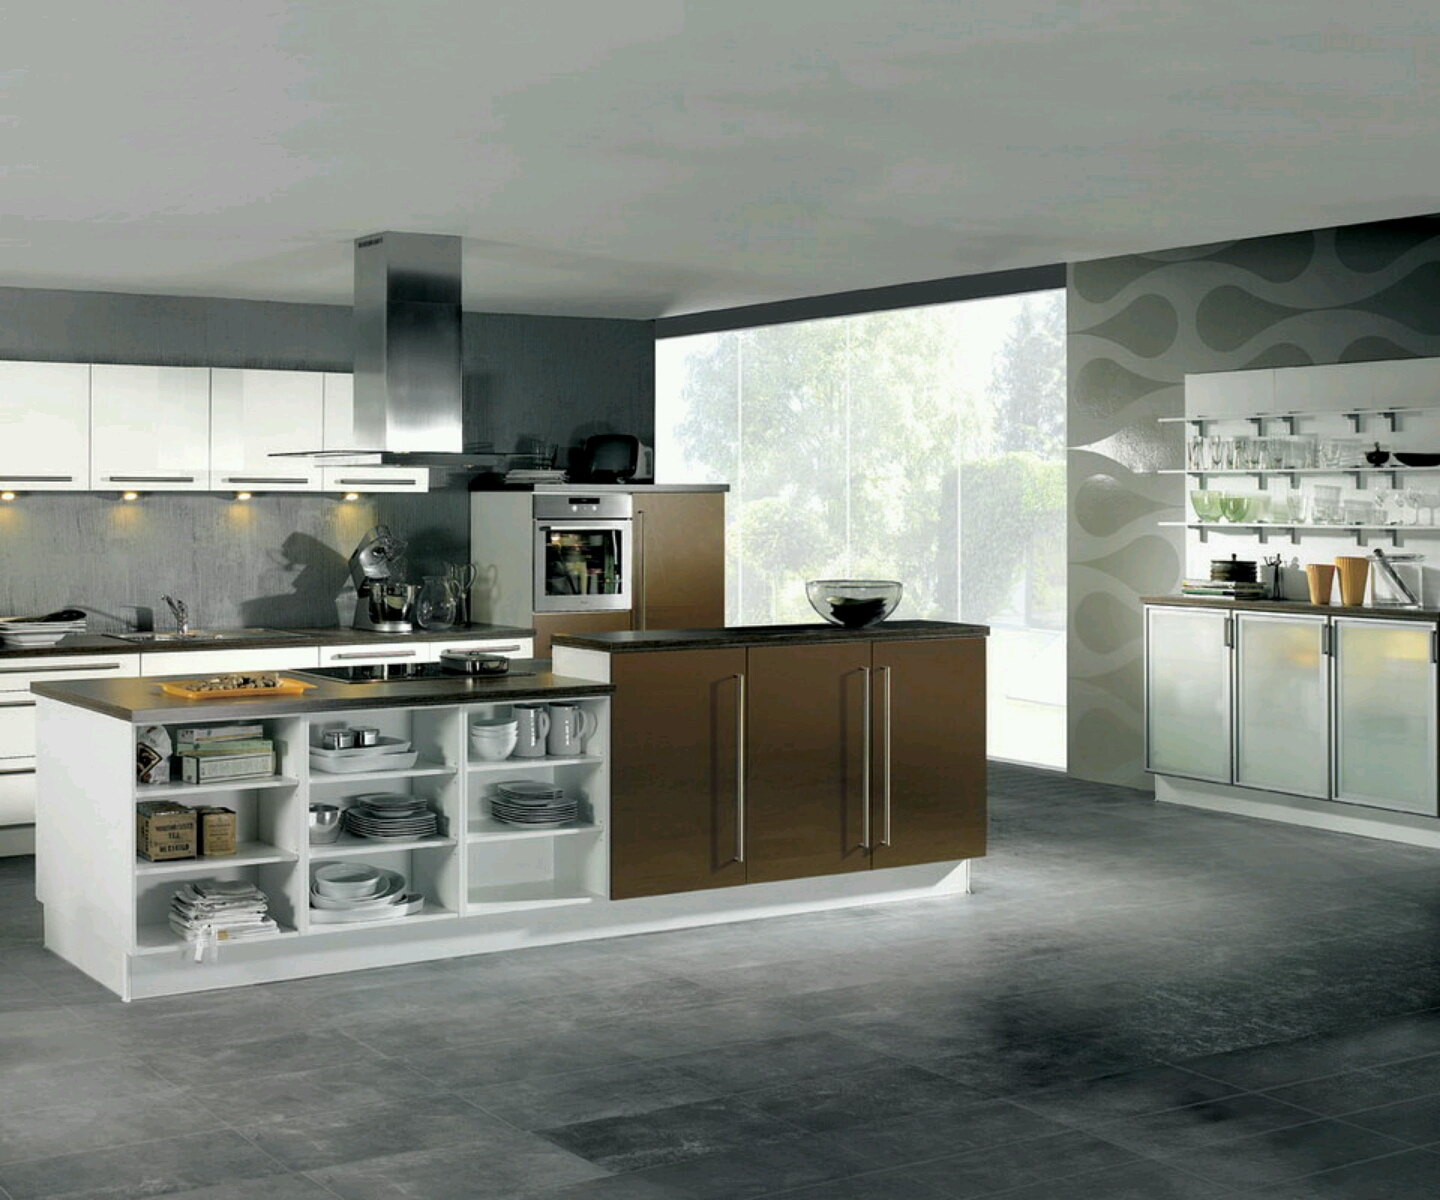 Http Shoaibnzm Home Design Blogspot Com 2013 01 Ultra Modern Kitchen Designs Ideas Html